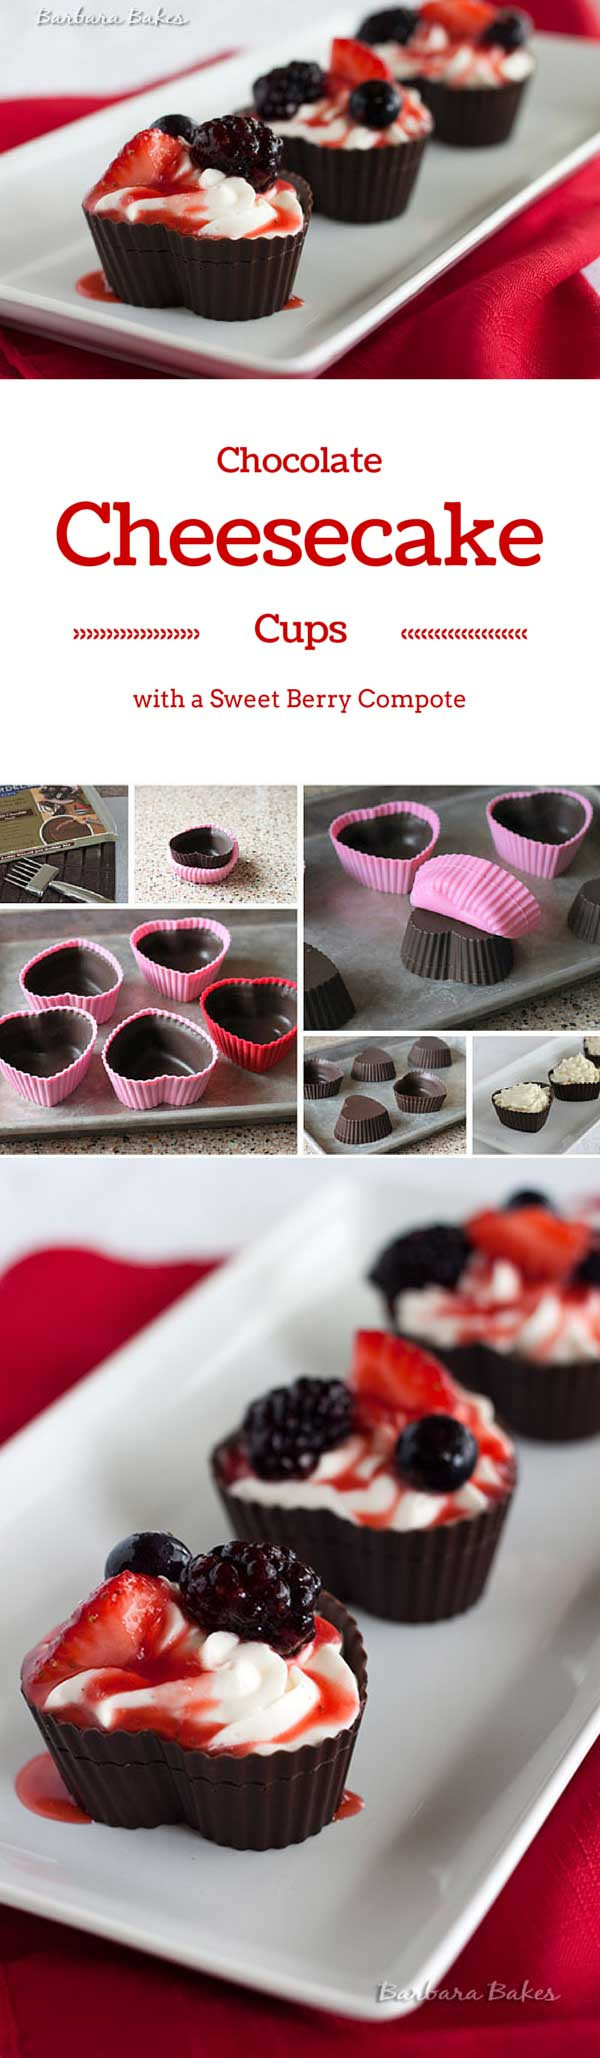 Chocolate-Cheesecake-Mousse-Cups-2-Collage-Barbara-Bakes